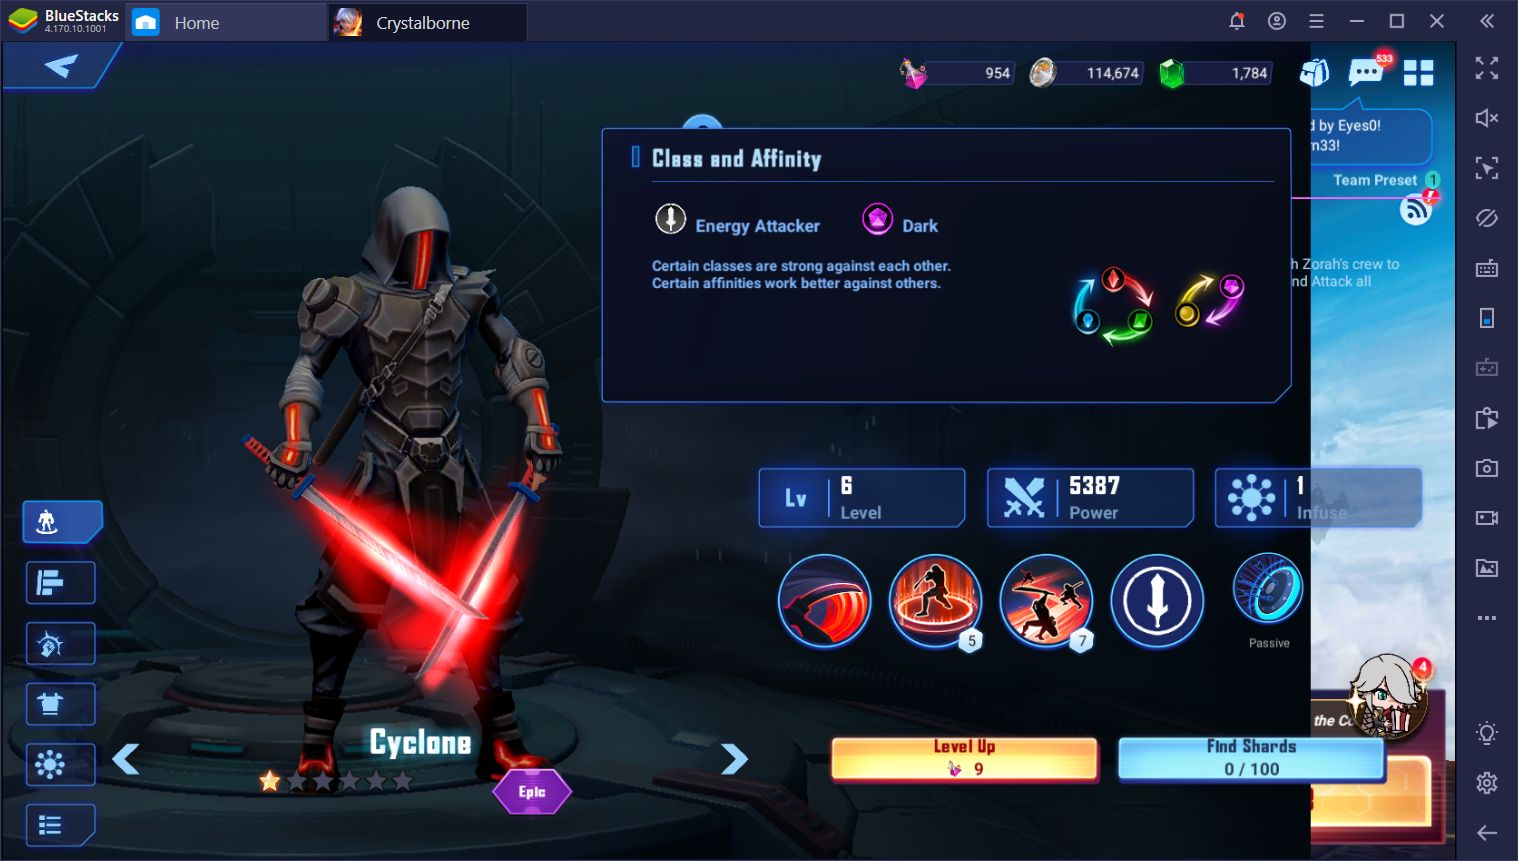 Tips and Tricks for Getting Started in Crystalborne: Heroes of Fate on PC